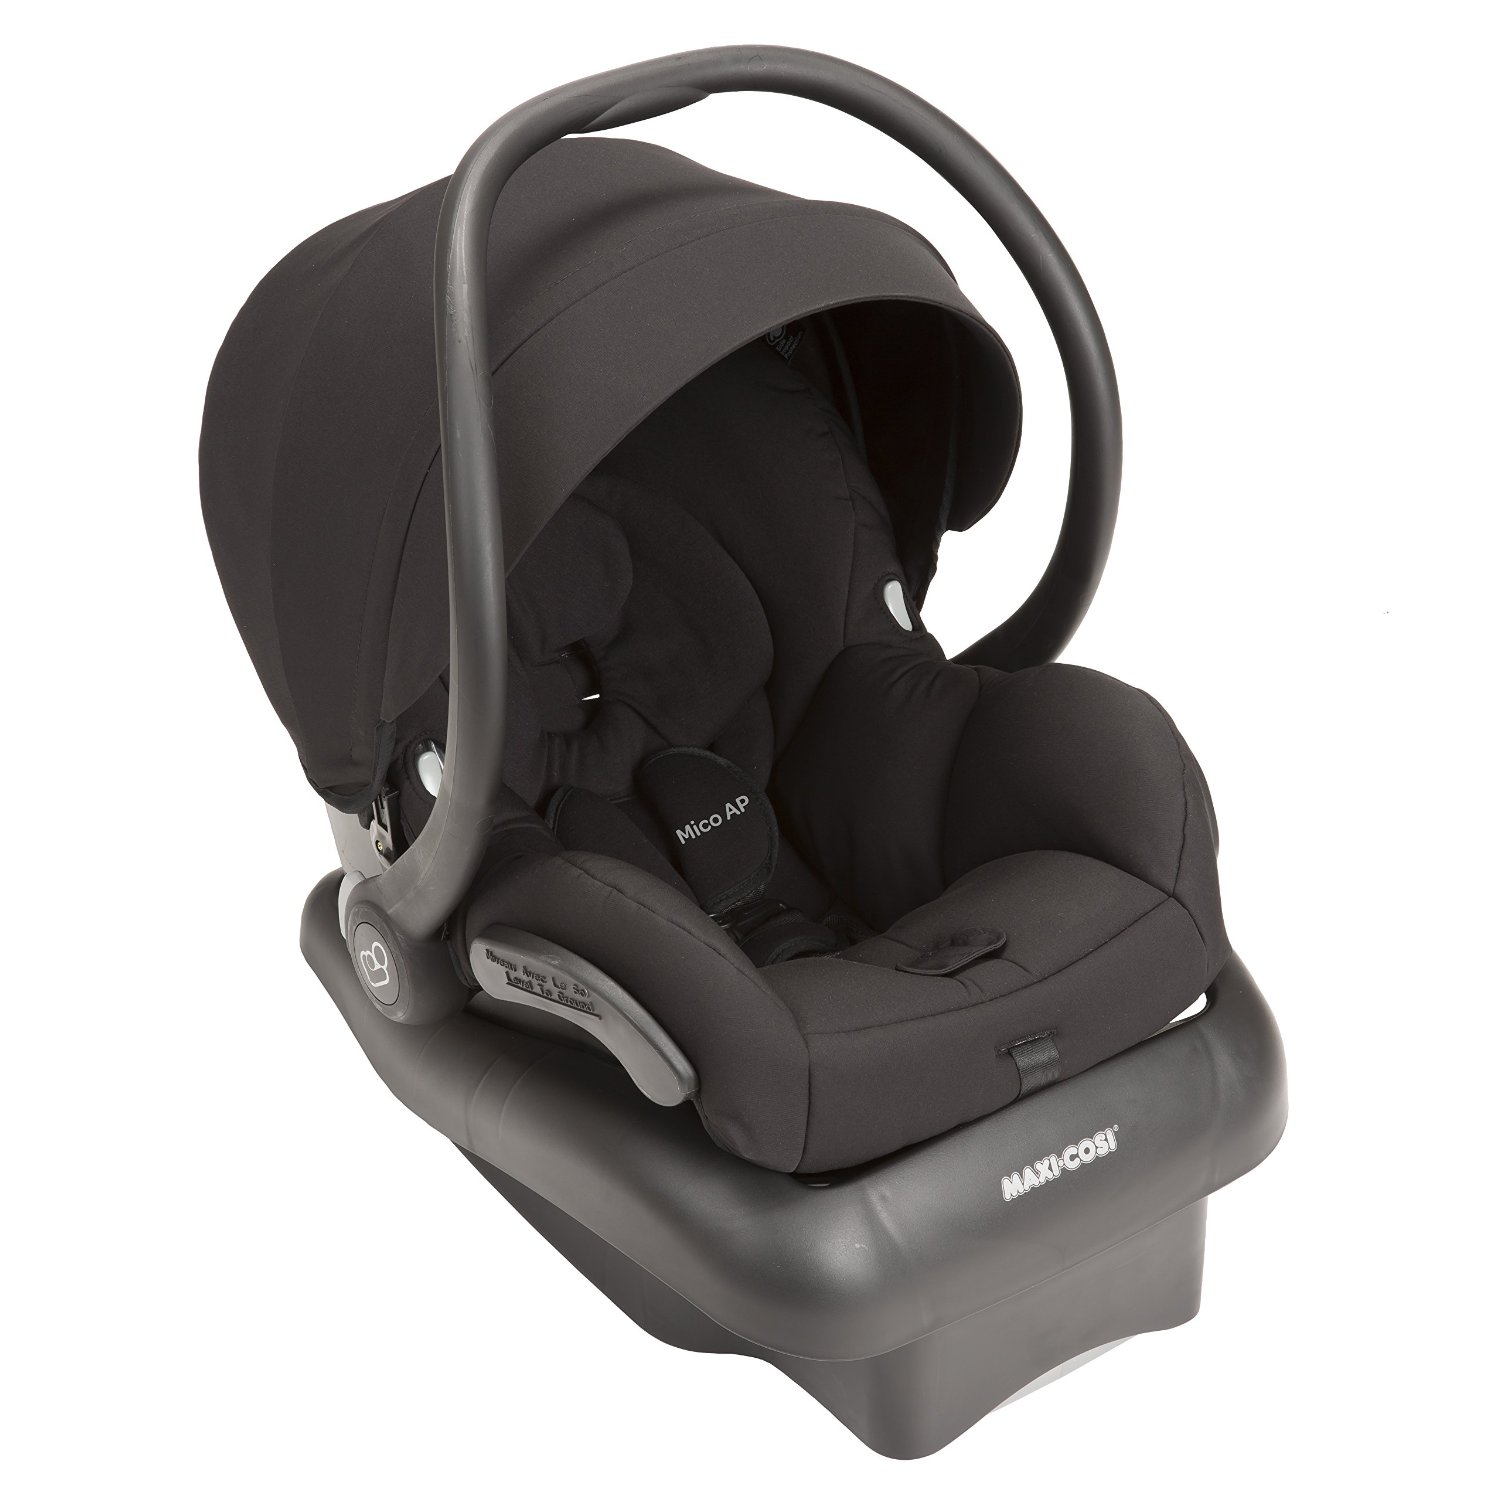 maxi cosi mico reviews the lightest infant car seats in 2016. Black Bedroom Furniture Sets. Home Design Ideas